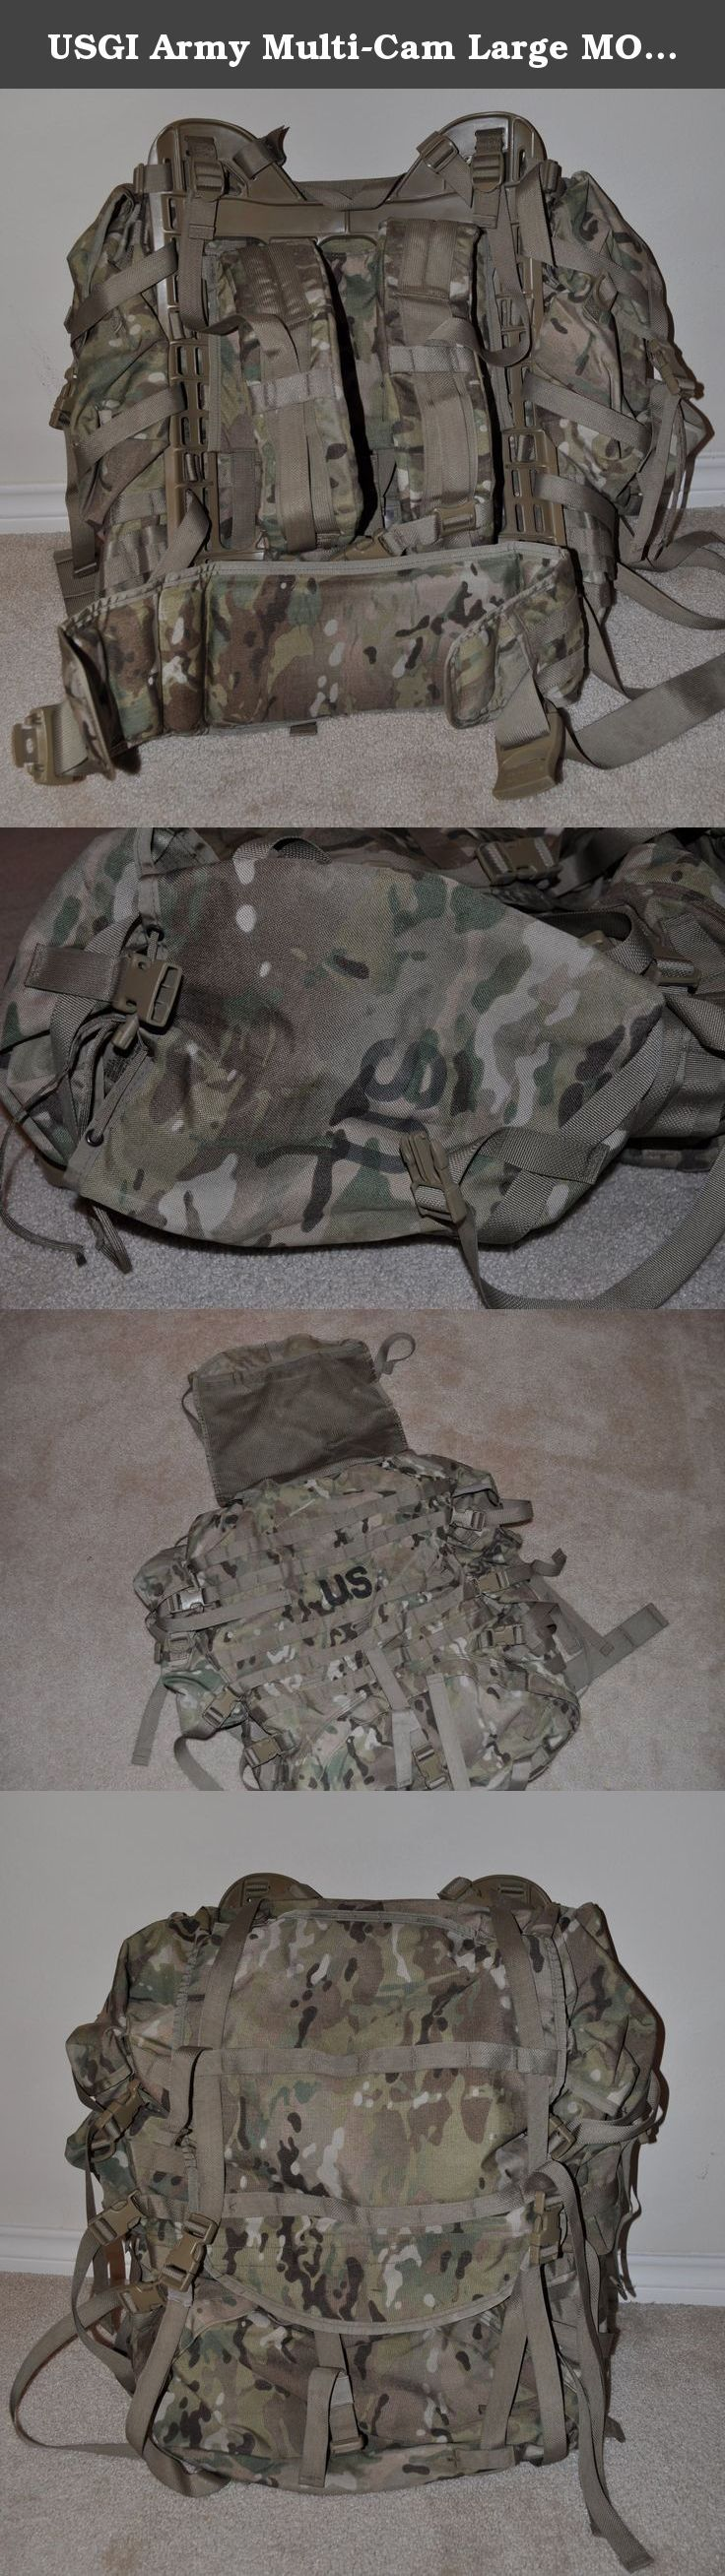 USGI Army Multi-Cam Large MOLLE II Rucksack. USGI Army Multi-Cam Large Modular Lightweight Load-Bearing Equipment (MOLLE) II Rucksack - Complete w/ frame, shoulder straps, hip belt and 2 sustainment pouches. Comes assembled.